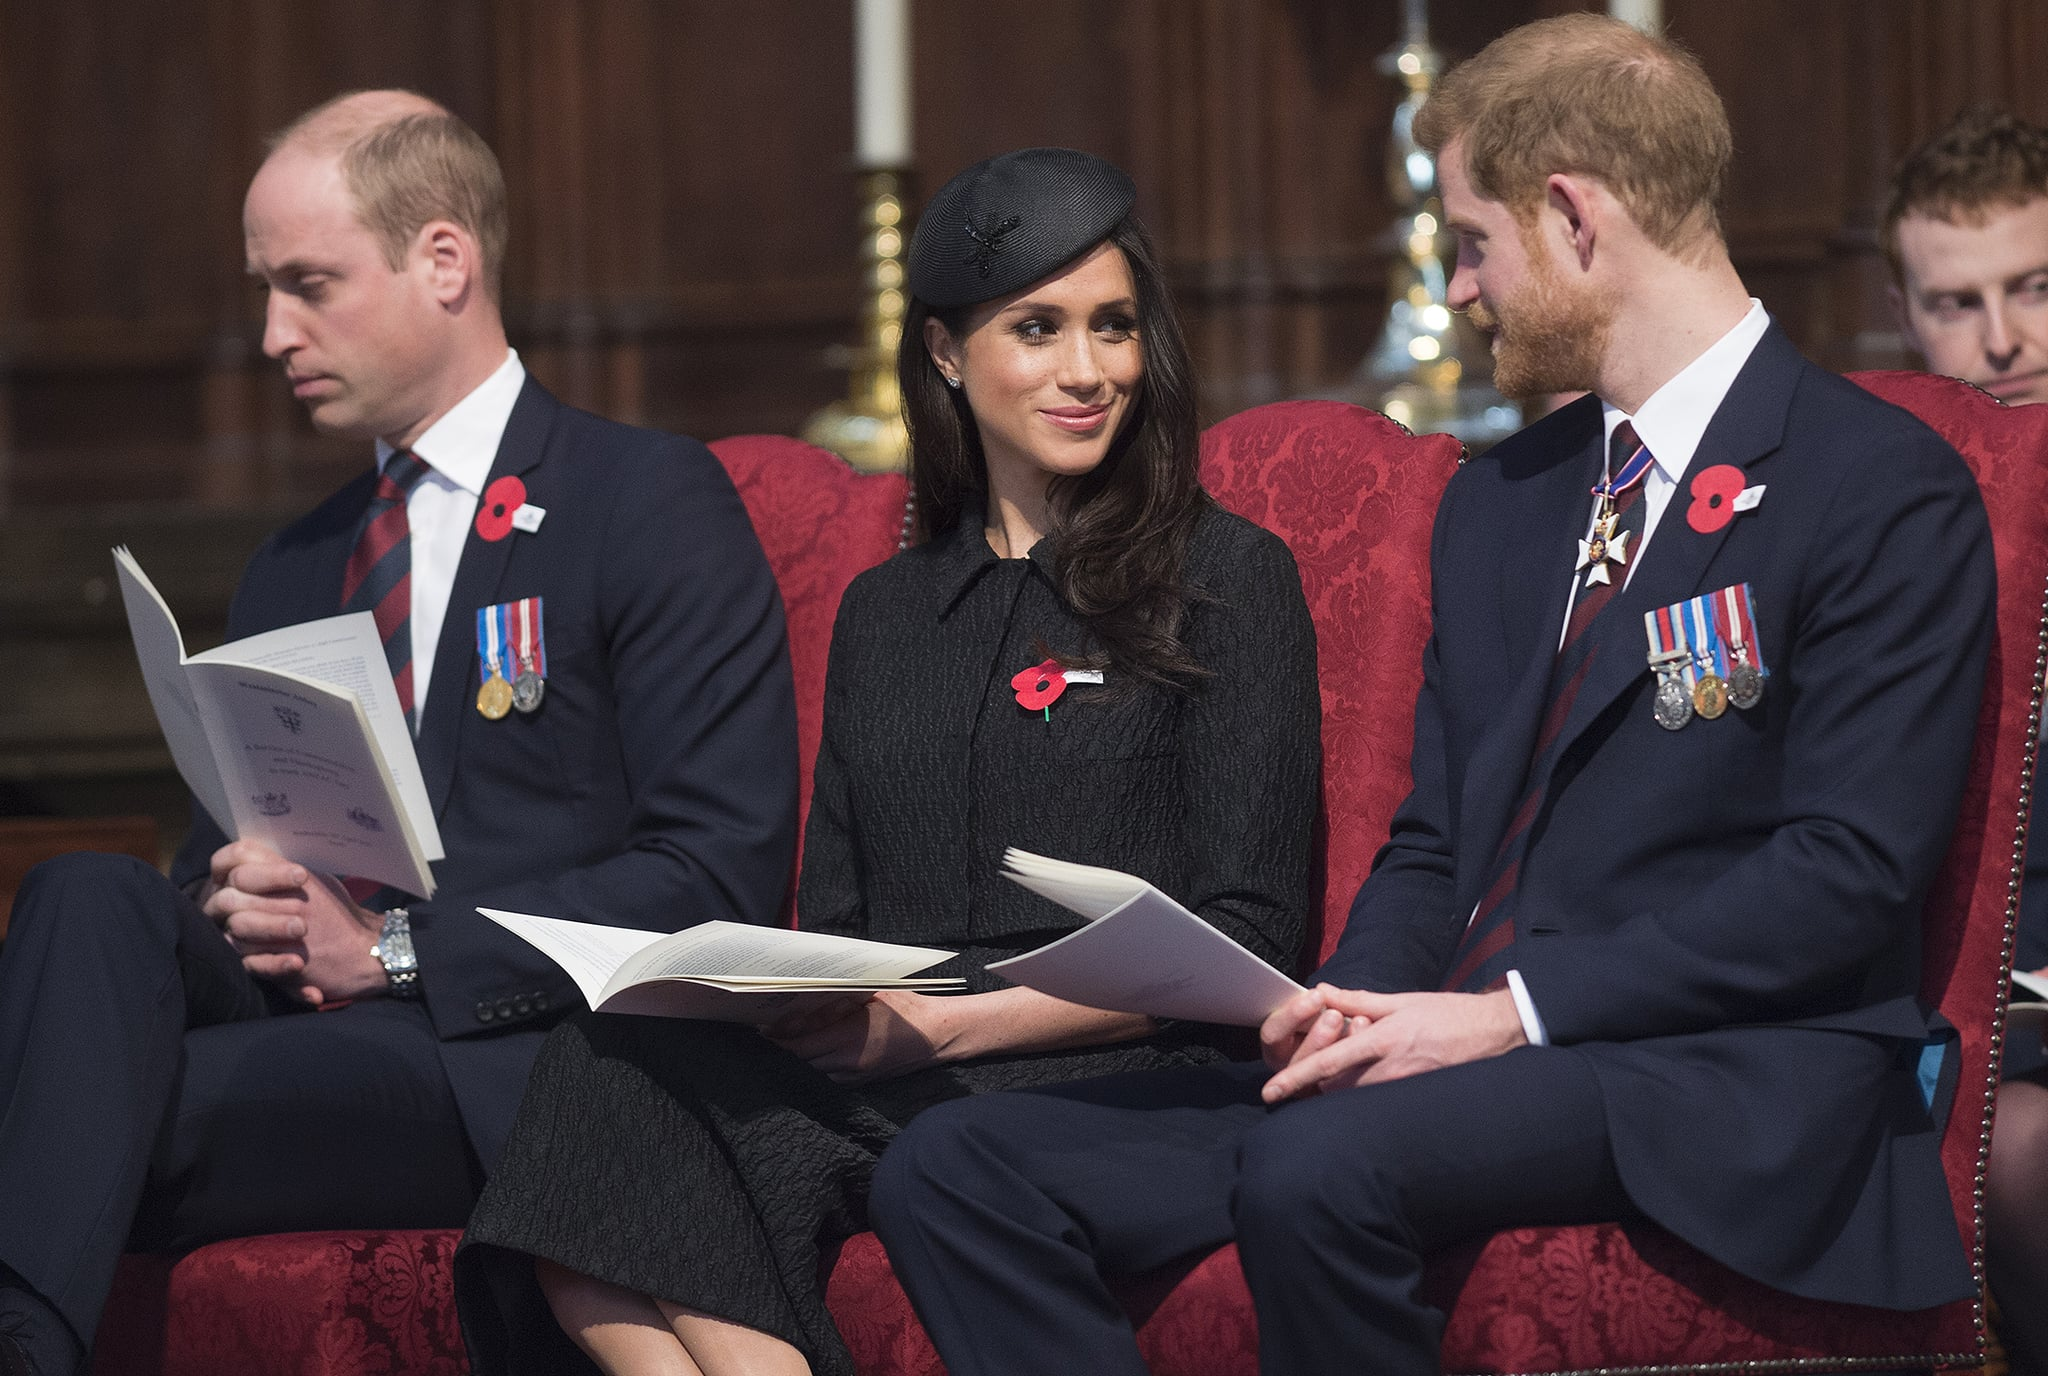 TOPSHOT - Britain's Prince Harry (R), his US fiancee Meghan Markle (C), and Britain's Prince William, Duke of Cambridge, attend a service of commemoration and thanksgiving to mark Anzac Day in Westminster Abbey in London on April 25, 2018. - Anzac Day marks the anniversary of the first major military action fought by Australian and New Zealand forces during the First World War. The Australian and New Zealand Army Corps (ANZAC) landed at Gallipoli in Turkey during World War I. (Photo by Eddie MULHOLLAND / POOL / AFP)        (Photo credit should read EDDIE MULHOLLAND/AFP/Getty Images)